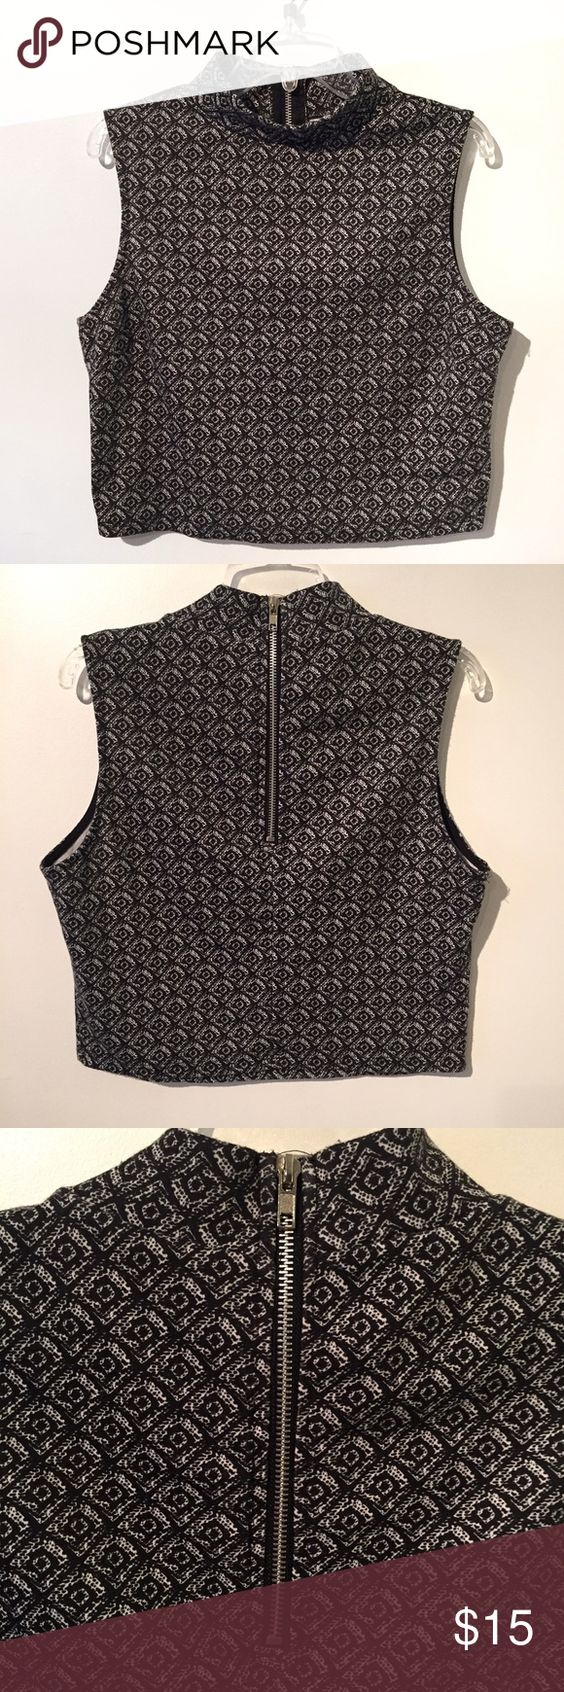 Turtle neck sleeveless printed crop top Diamond print crop top with high neck. Worn once. Small zipper in back. Perfect like new condition Urban Outfitters Tops Crop Tops